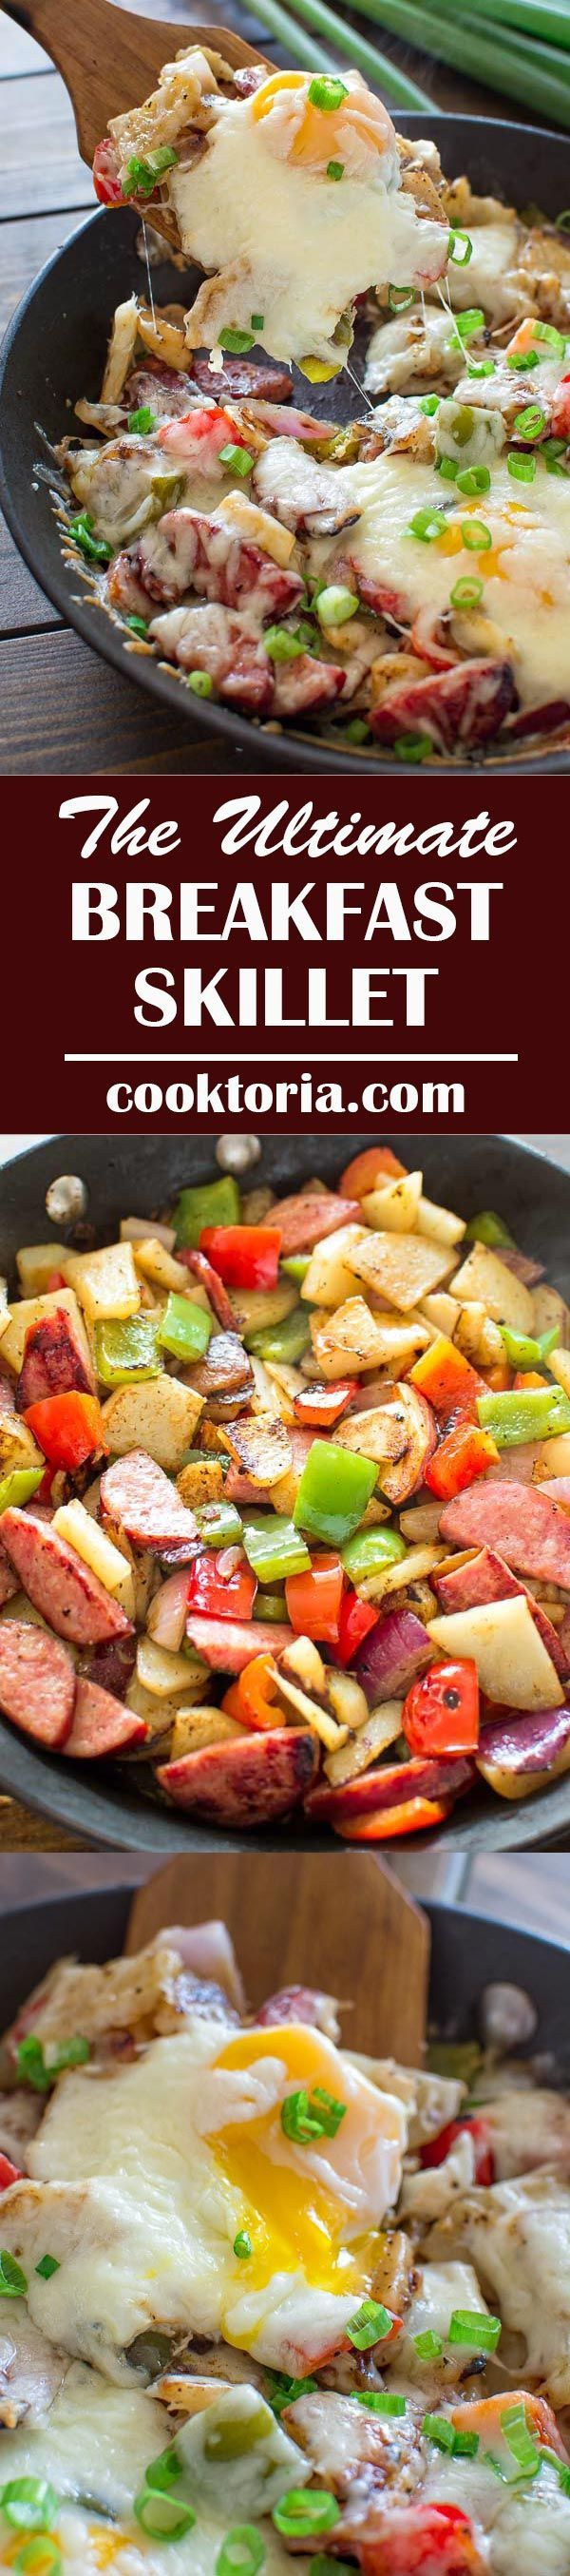 Enjoy this delicious Ultimate Breakfast Skillet made with eggs, potatoes, sweet peppers, onions, kielbasa and, of course, some melted cheese on top. ❤ http://COOKTORIA.COM